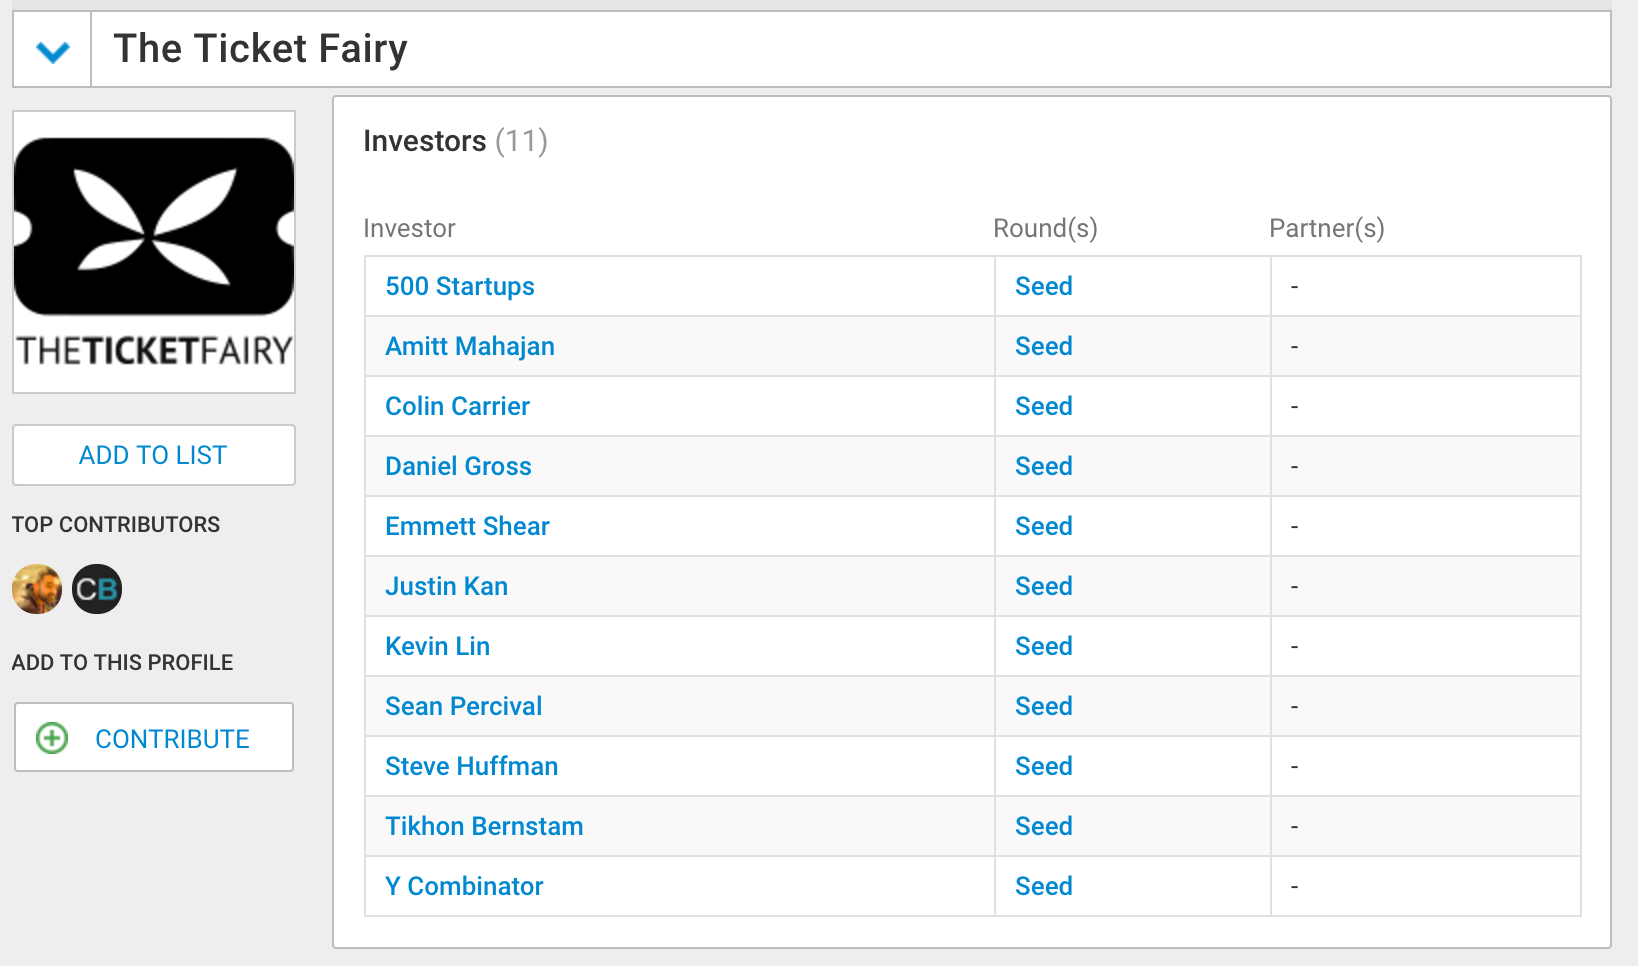 The Ticket Fairy's Investor List (Photo: Crunchbase)